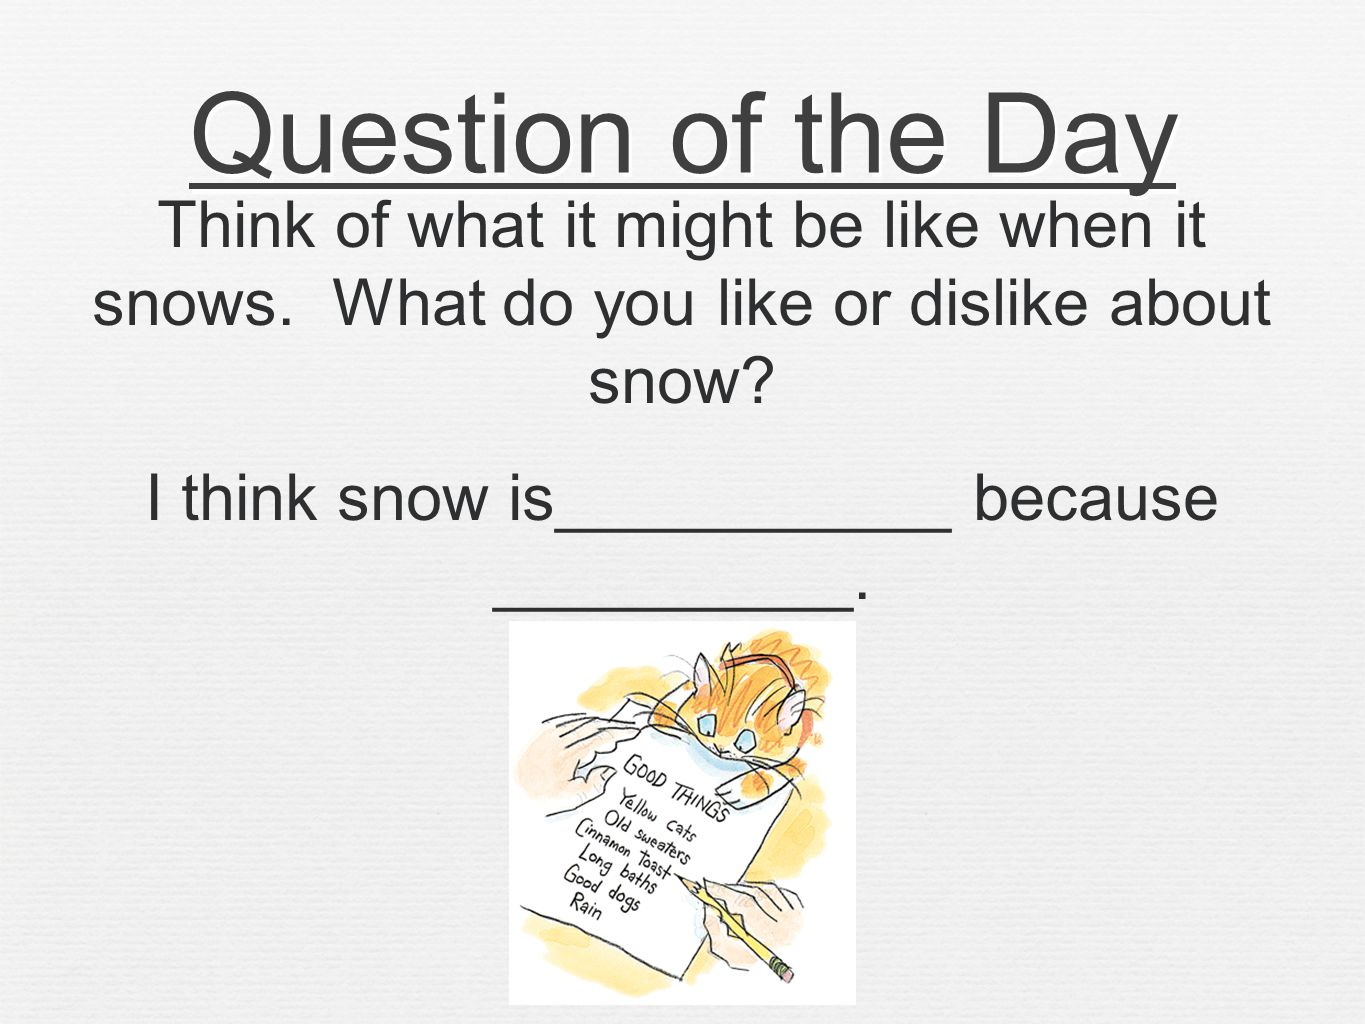 Question of the Day Think of what it might be like when it snows.